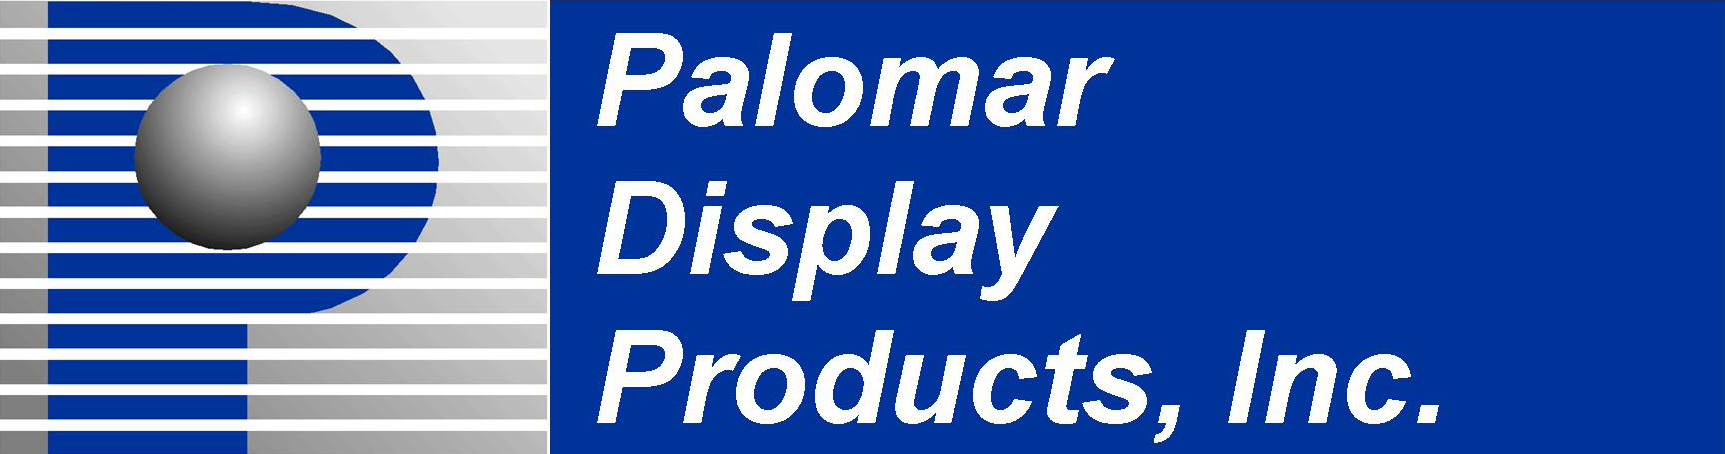 Palomar Display Products